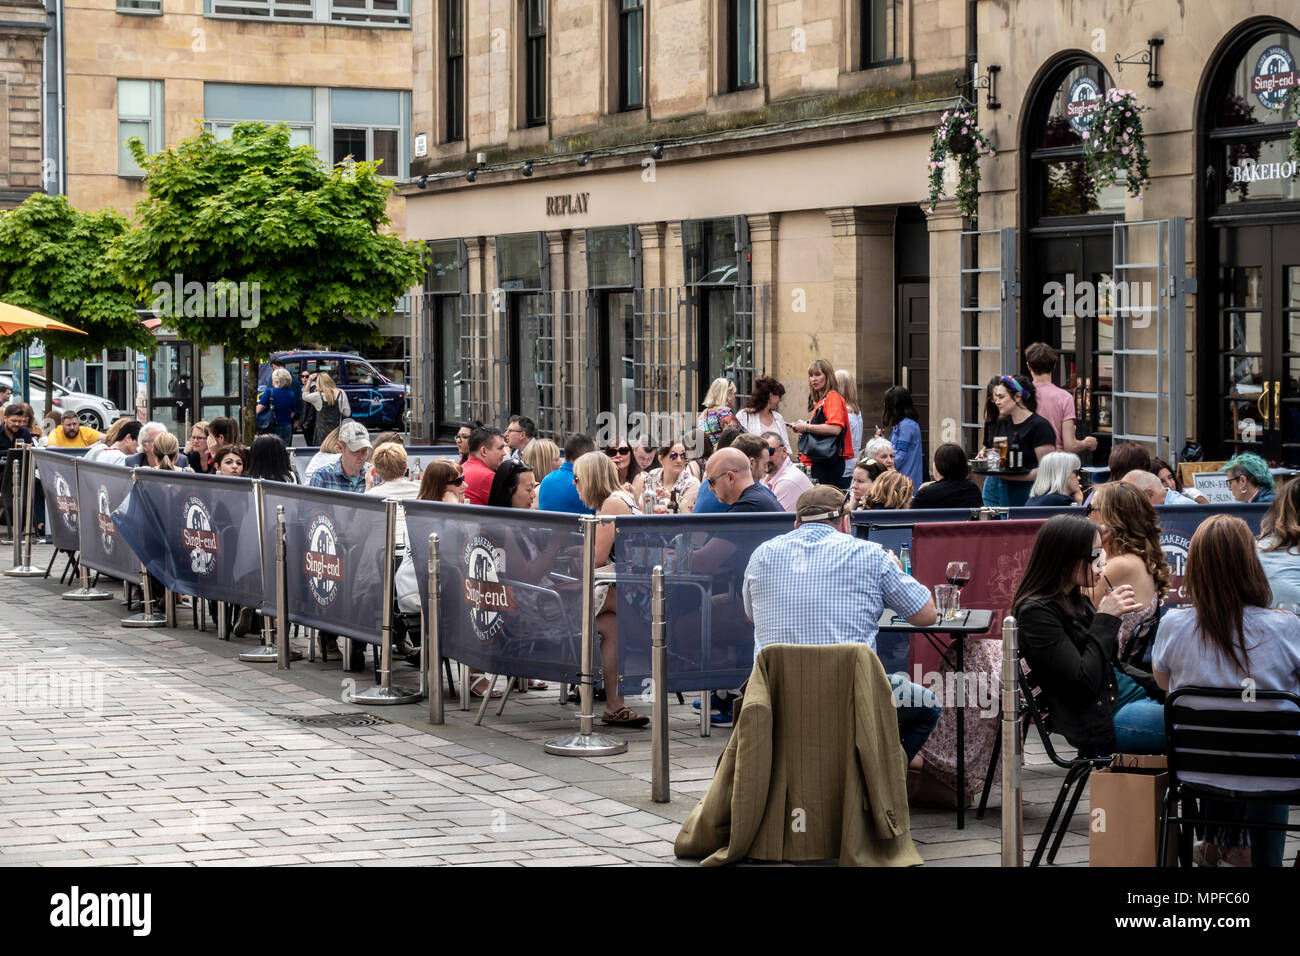 Large group of people in the outdoor seated area of the Singl-end Bakehouse & cafe, John St, Merchant City, Glasgow, Scotland, UK - Stock Image